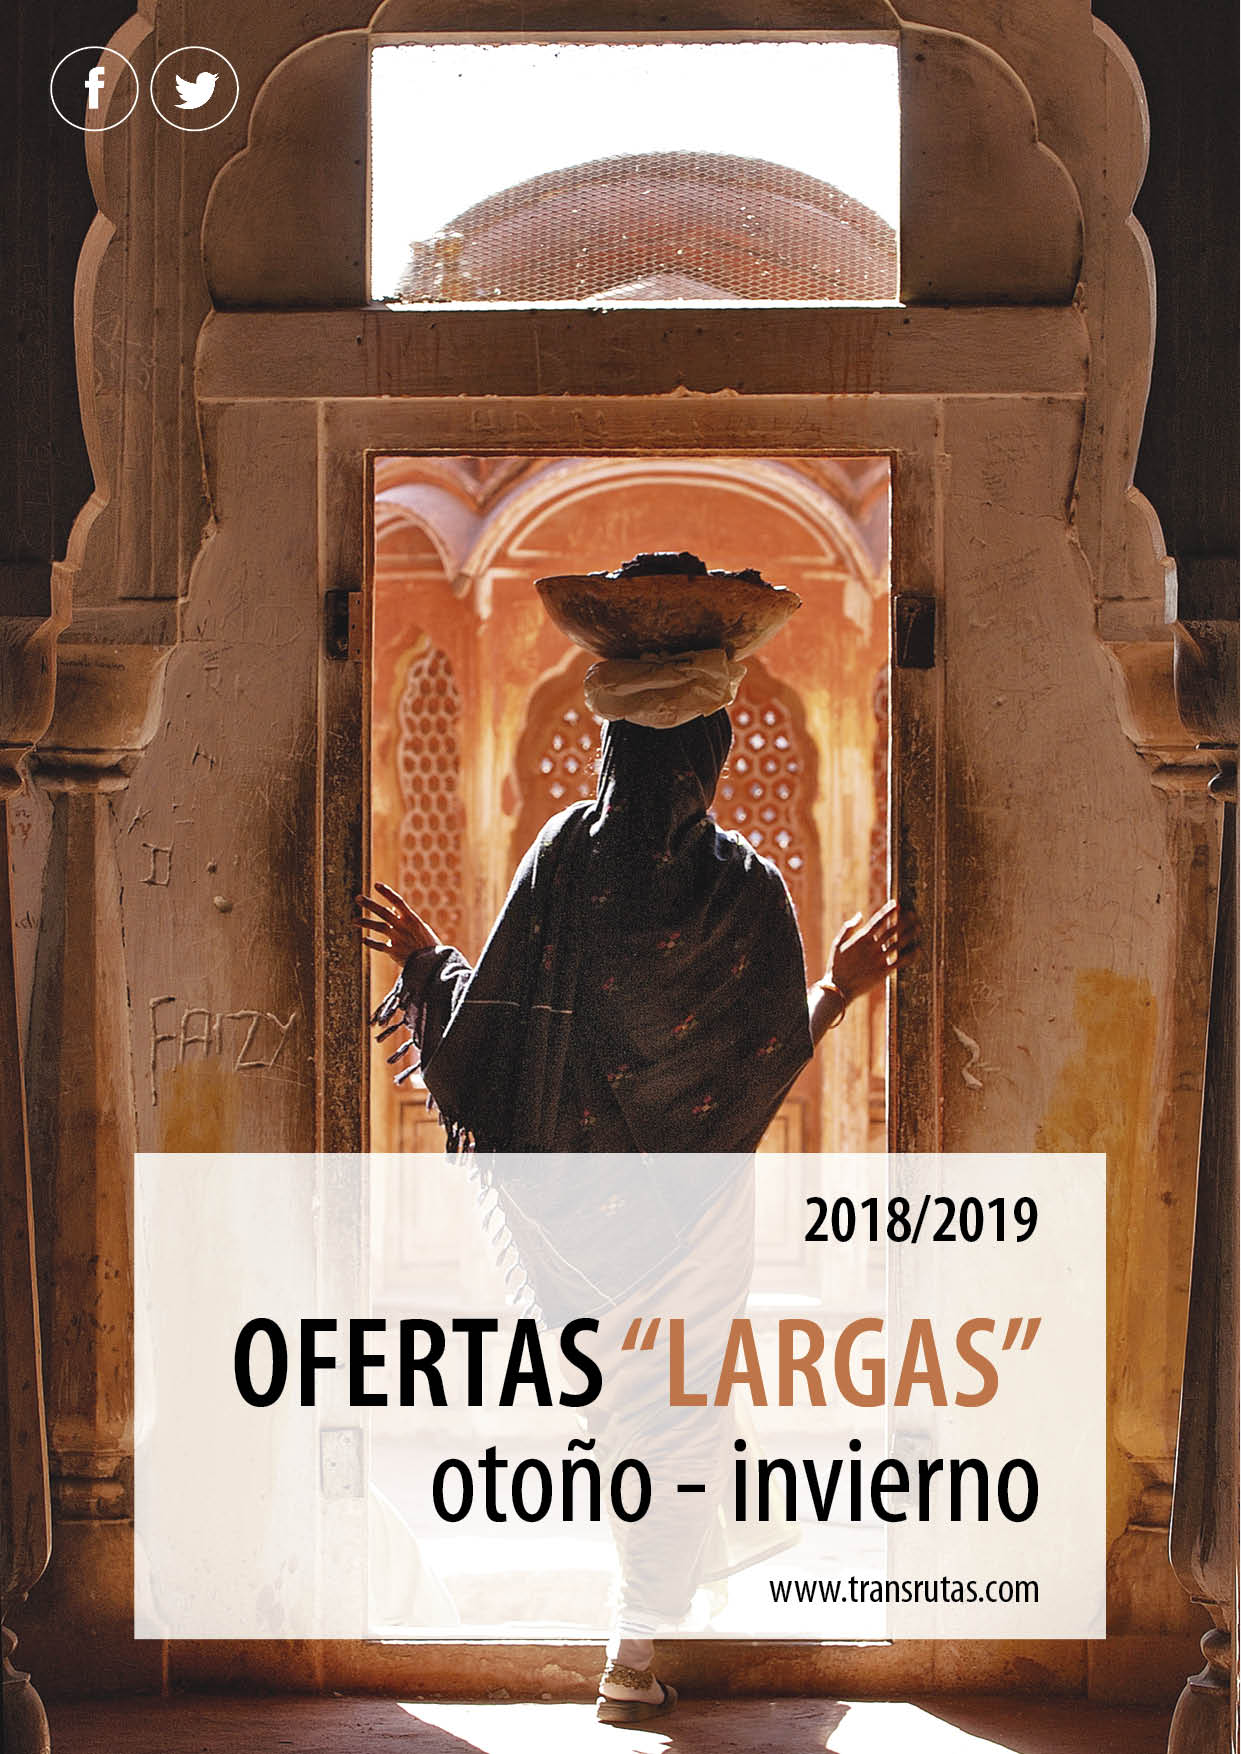 Catalogo Transrutas Largas Distancias Otono-Invierno 2018-2019